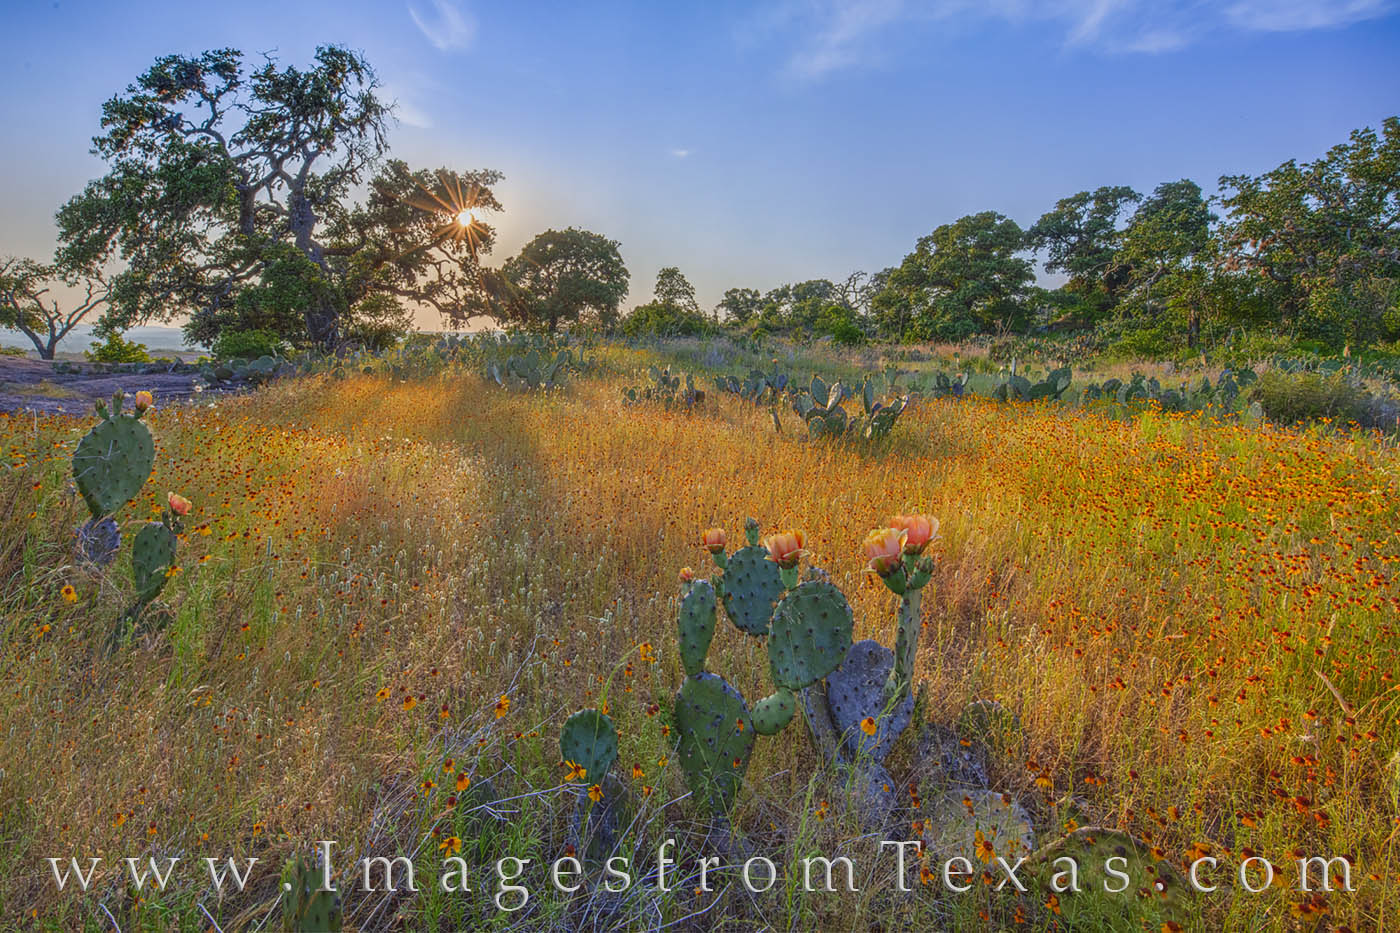 prickly pear, sunste, enchanted rock, little rock, greenthread, gold, yellow, wildflowers, hill country, evening, photo